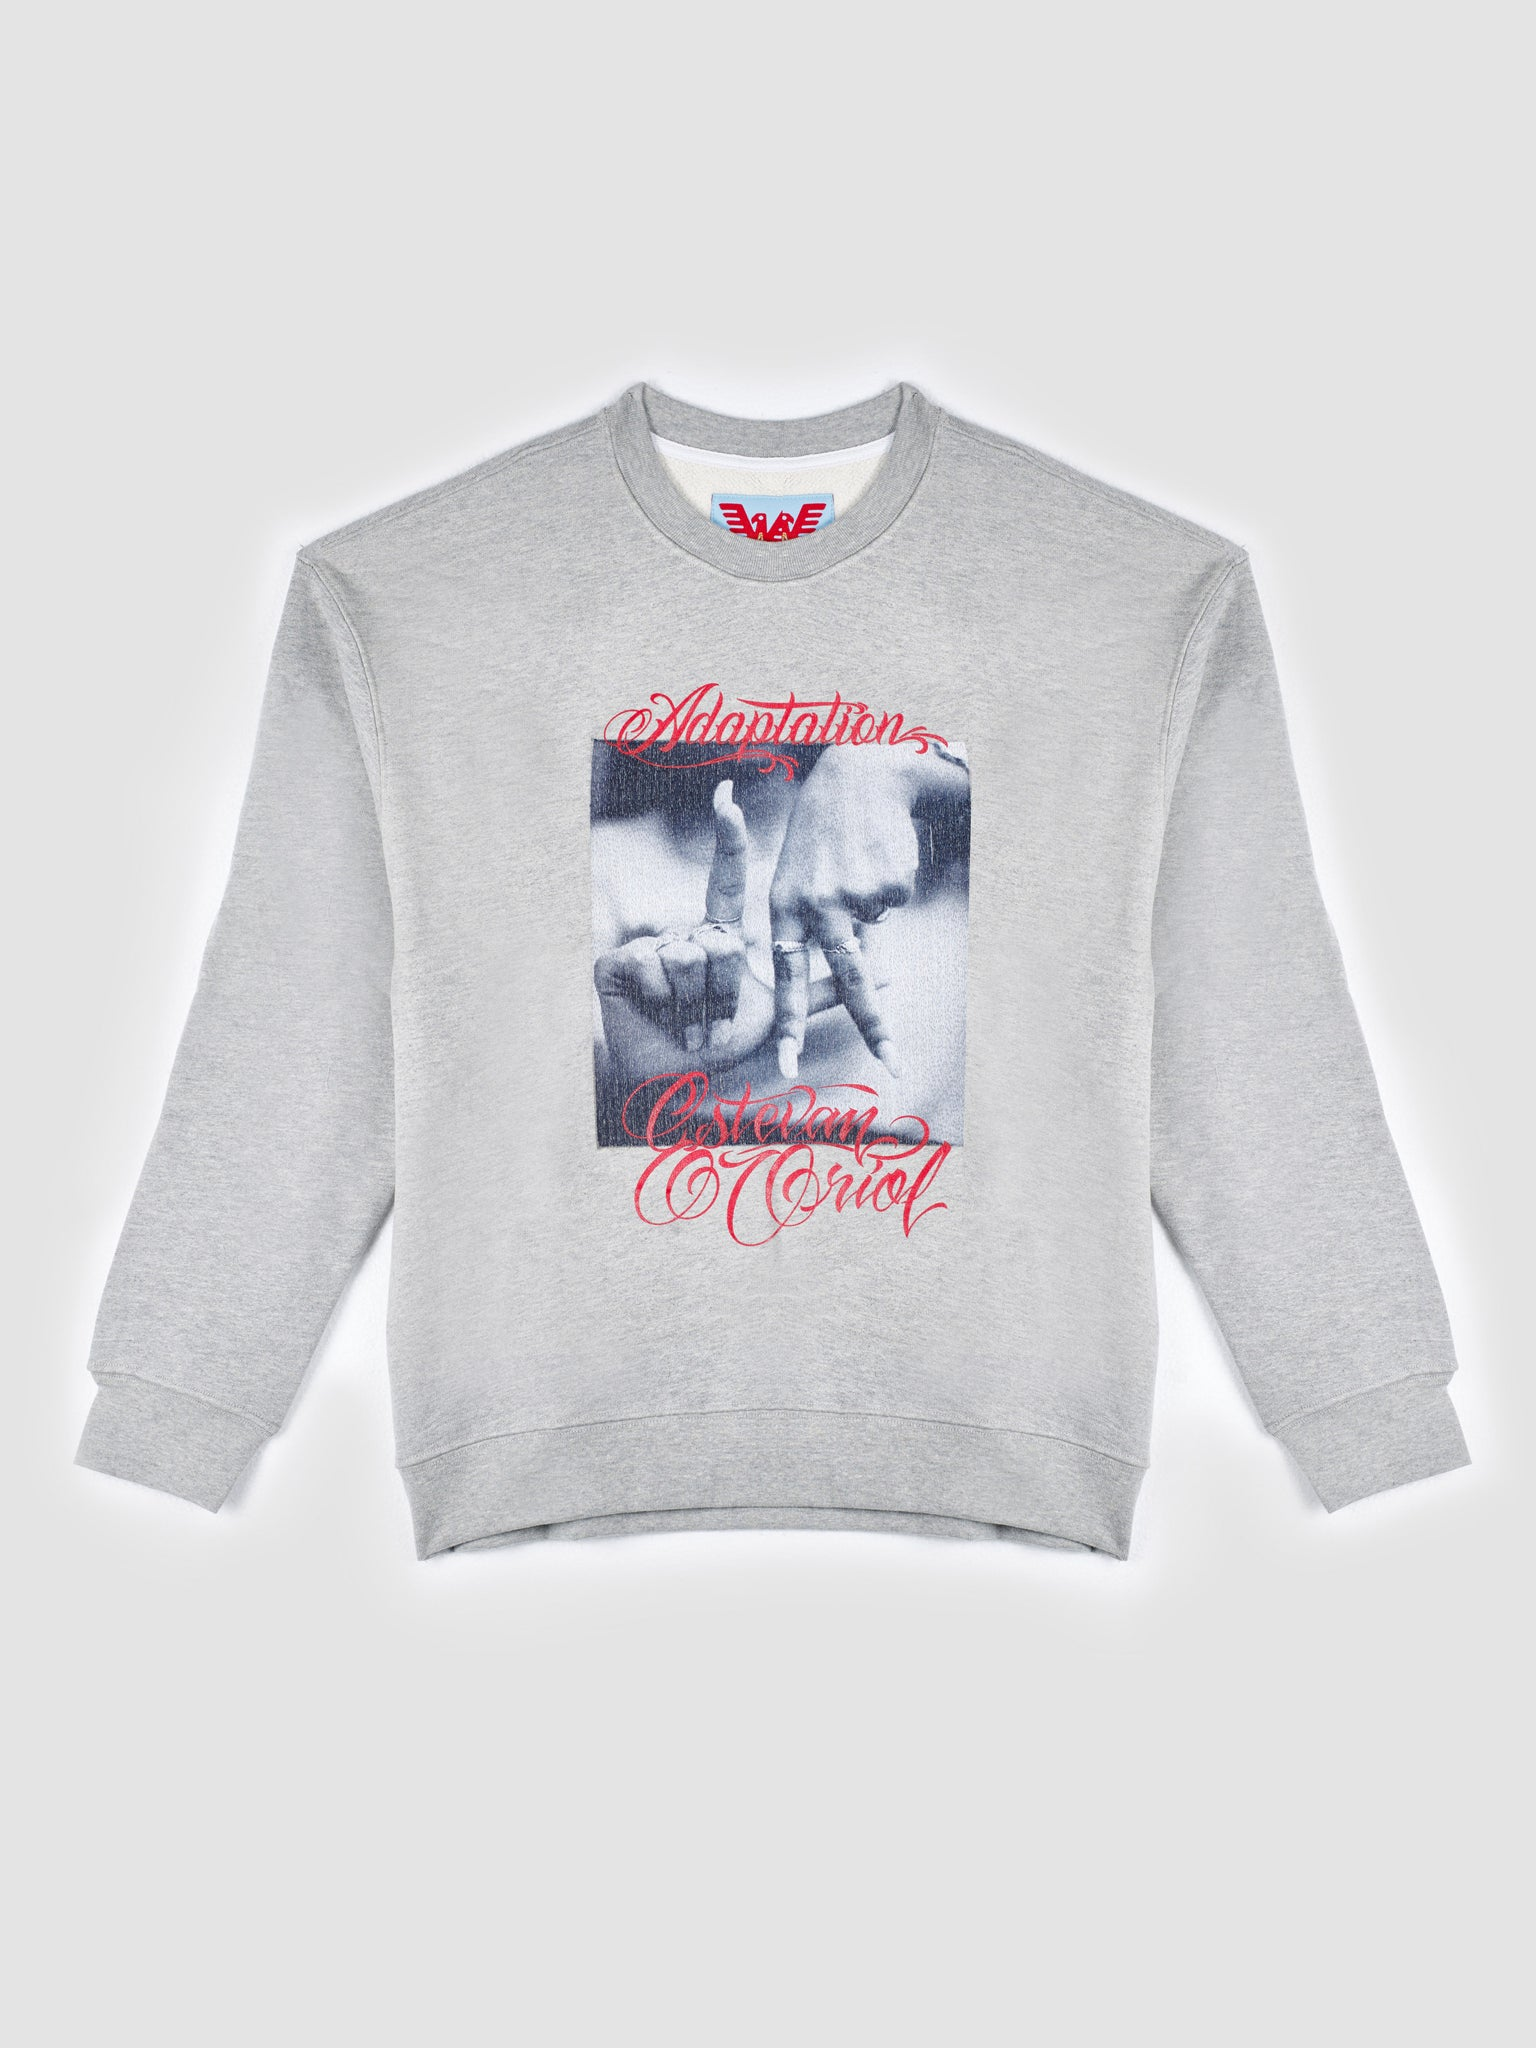 Adaptation Printed Crew Neck Sweatshirt